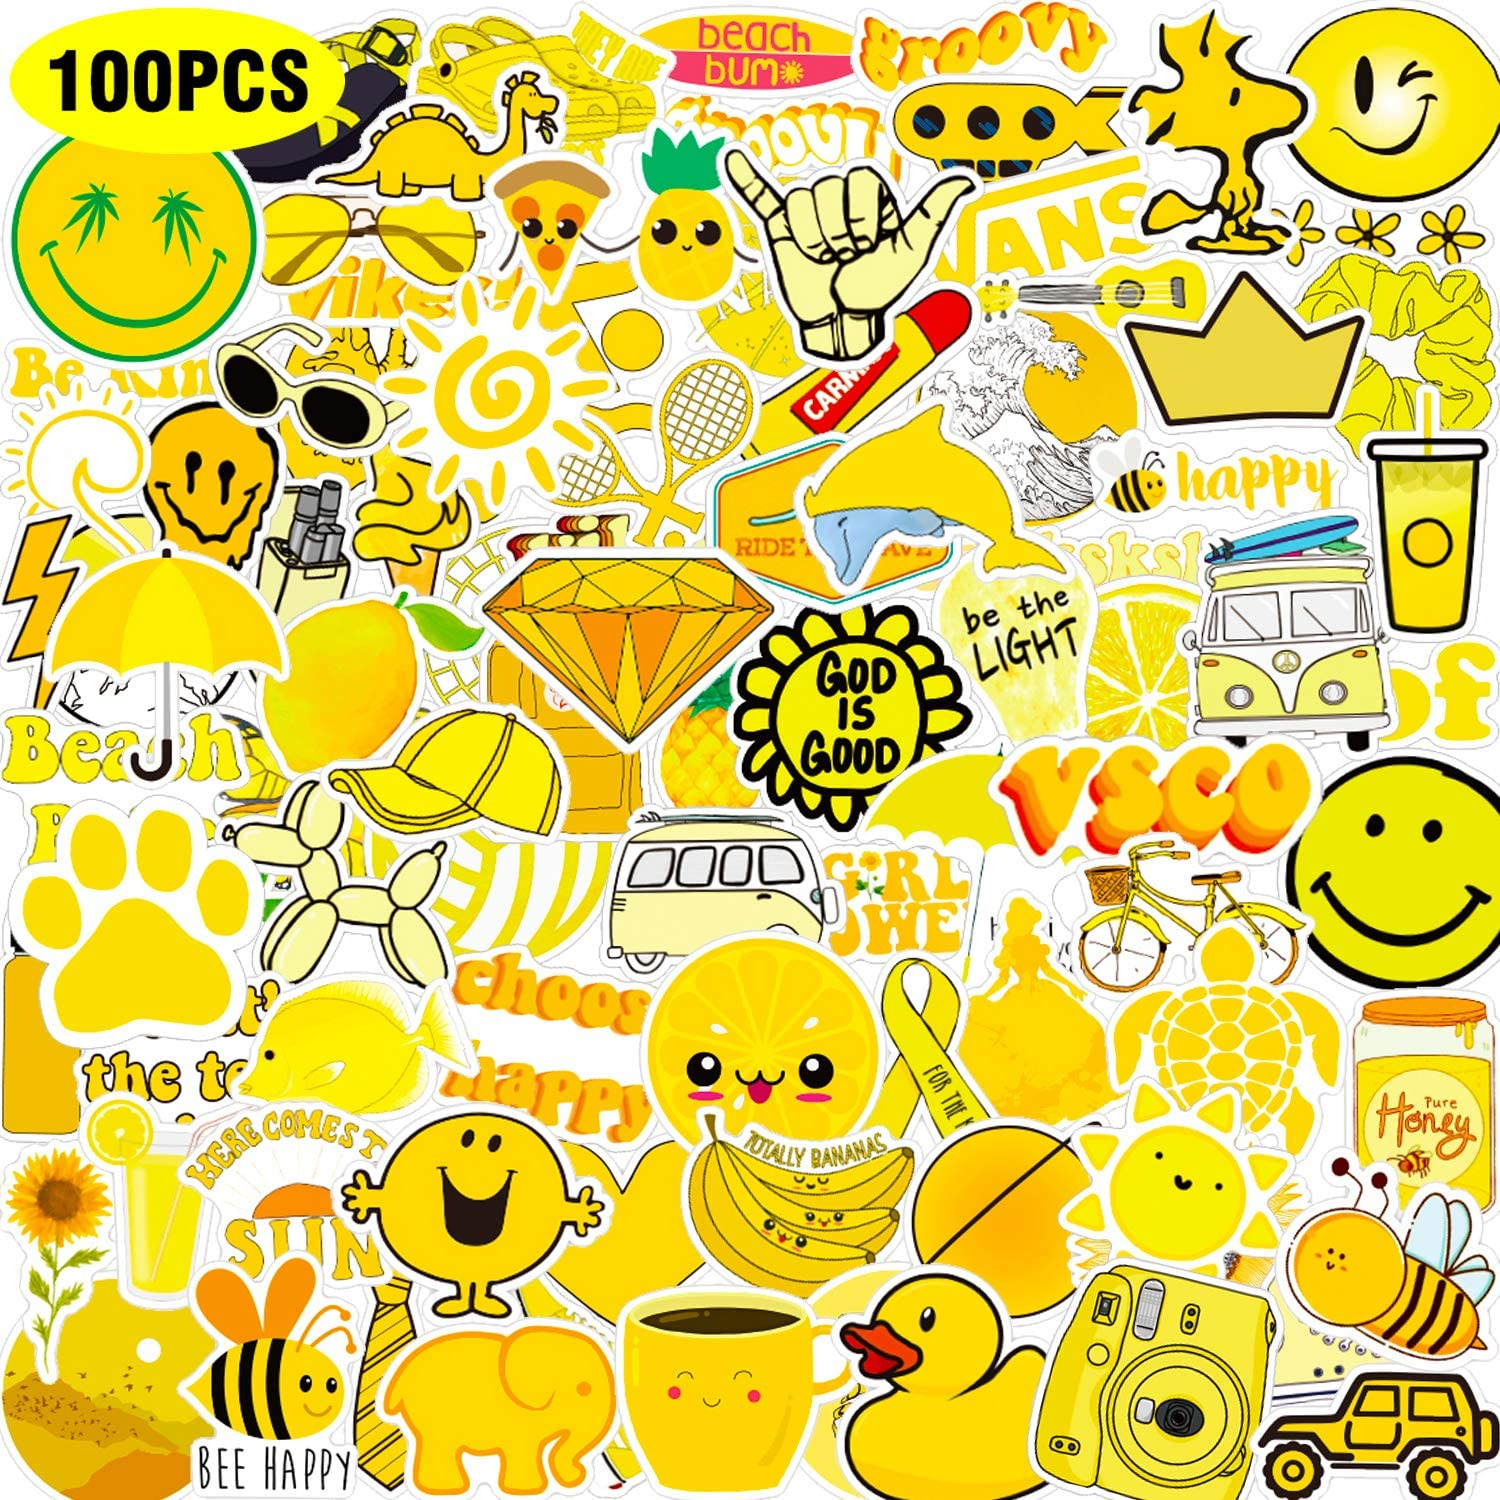 JOINBO 100 Pcs Not Repeating Yellow VSCO Stickers for Water Bottles Cute,Waterproof,Aesthetic,Trendy Stickers for Kids,Girls Perfect for Waterbottle,Laptop,Phone,Travel Extra Durable Vinyl